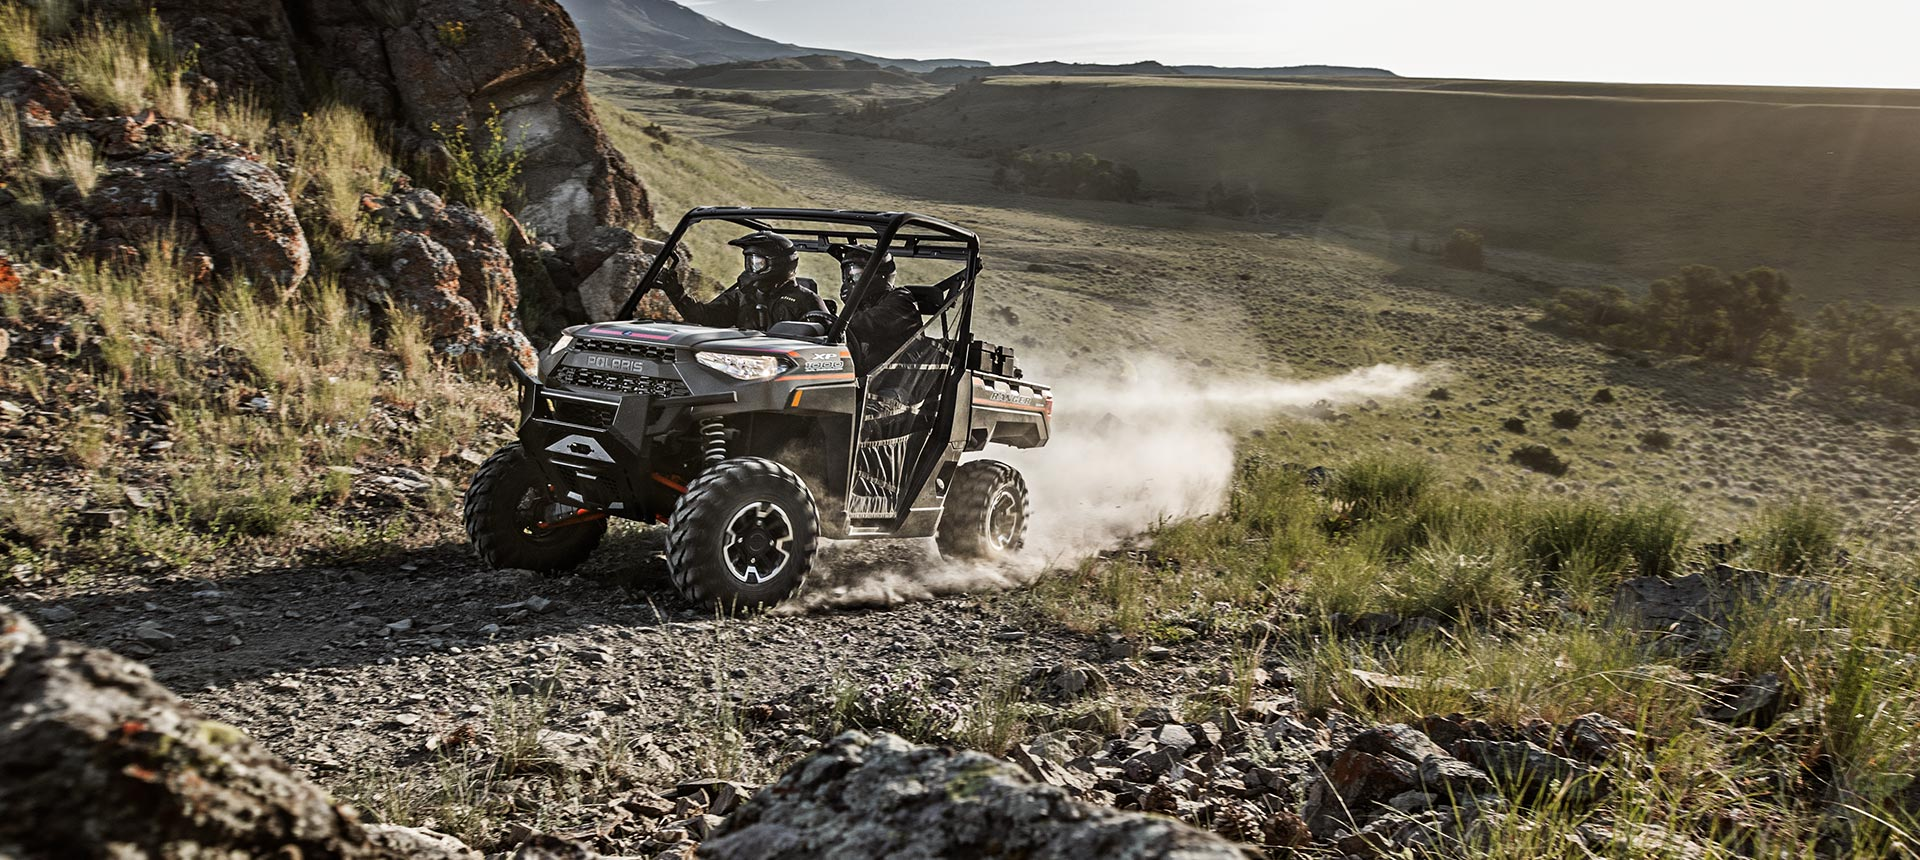 2019 Polaris Ranger XP 1000 EPS in Tyler, Texas - Photo 2